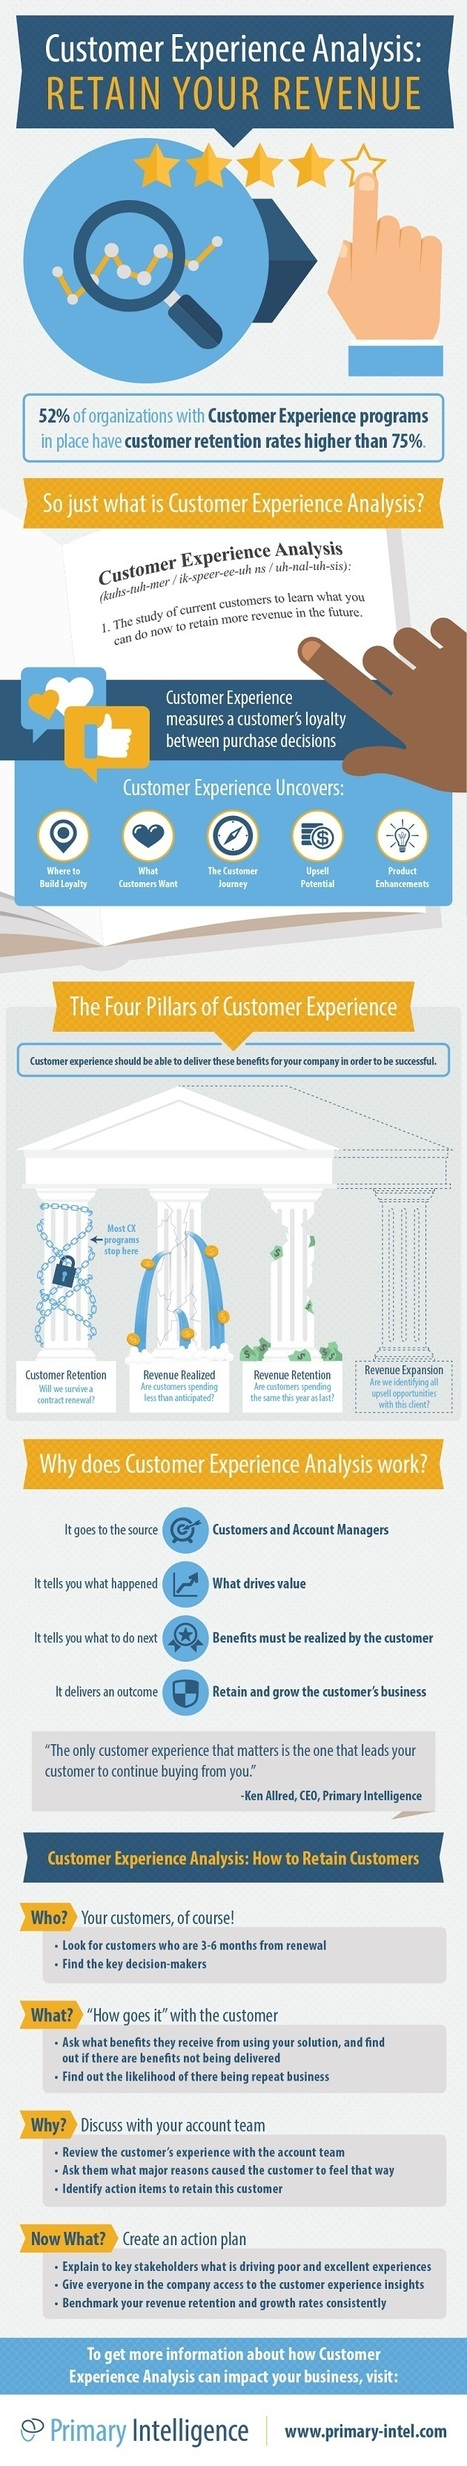 Customer Experience Analysis: How to Retain Your Customers [Infographic] | New Customer & Employee Management | Scoop.it